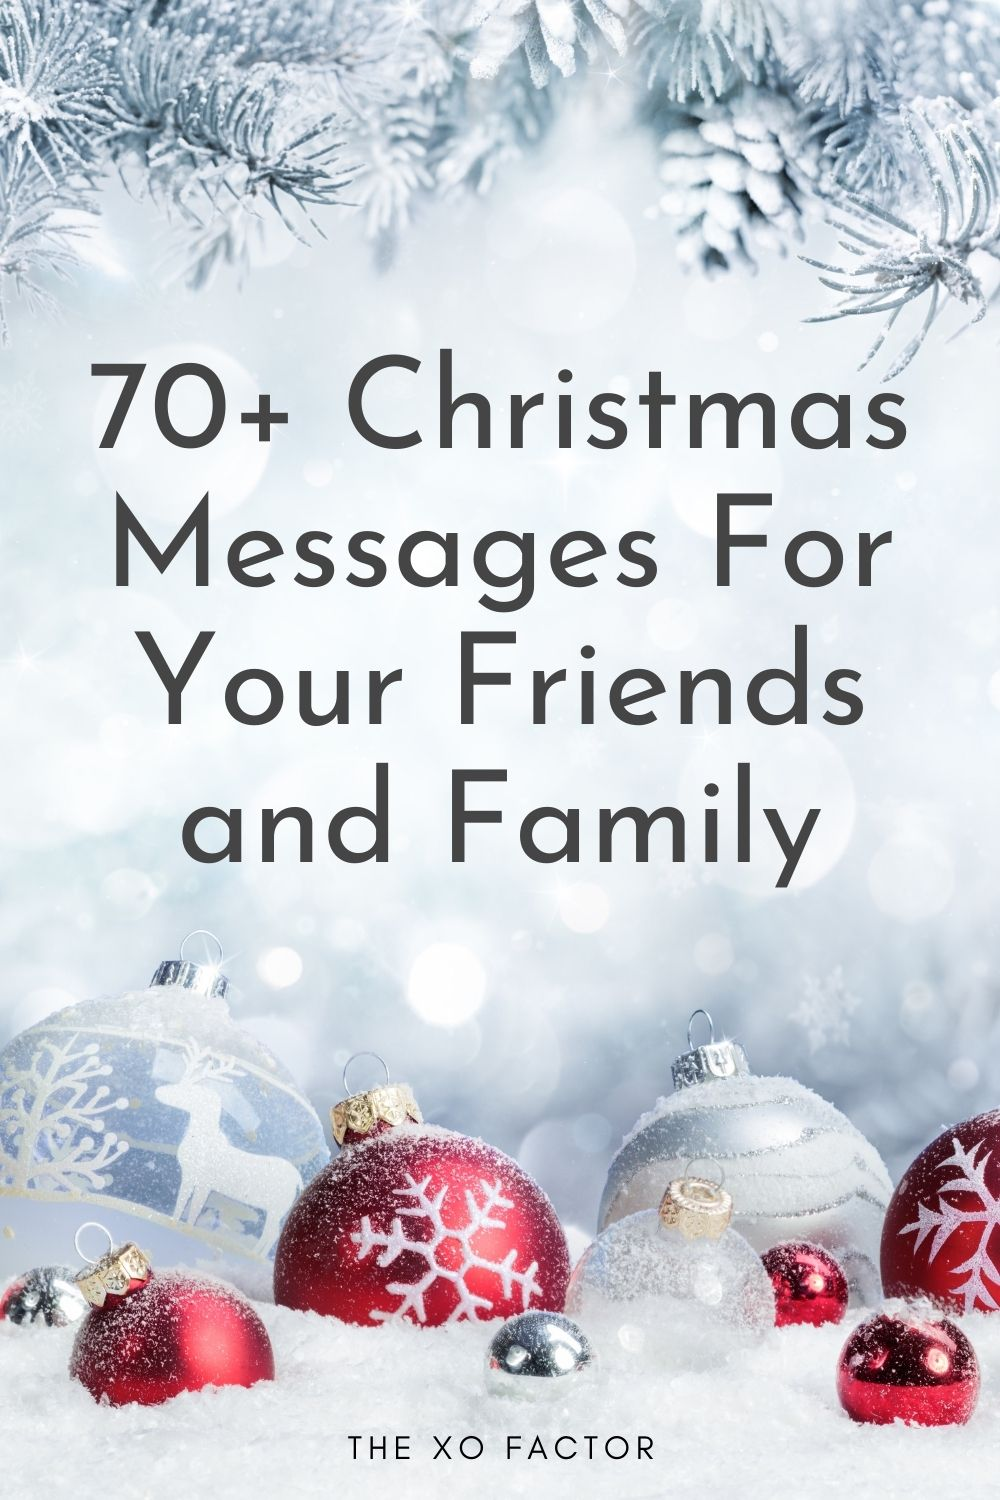 70+ Christmas messages for your friends and family